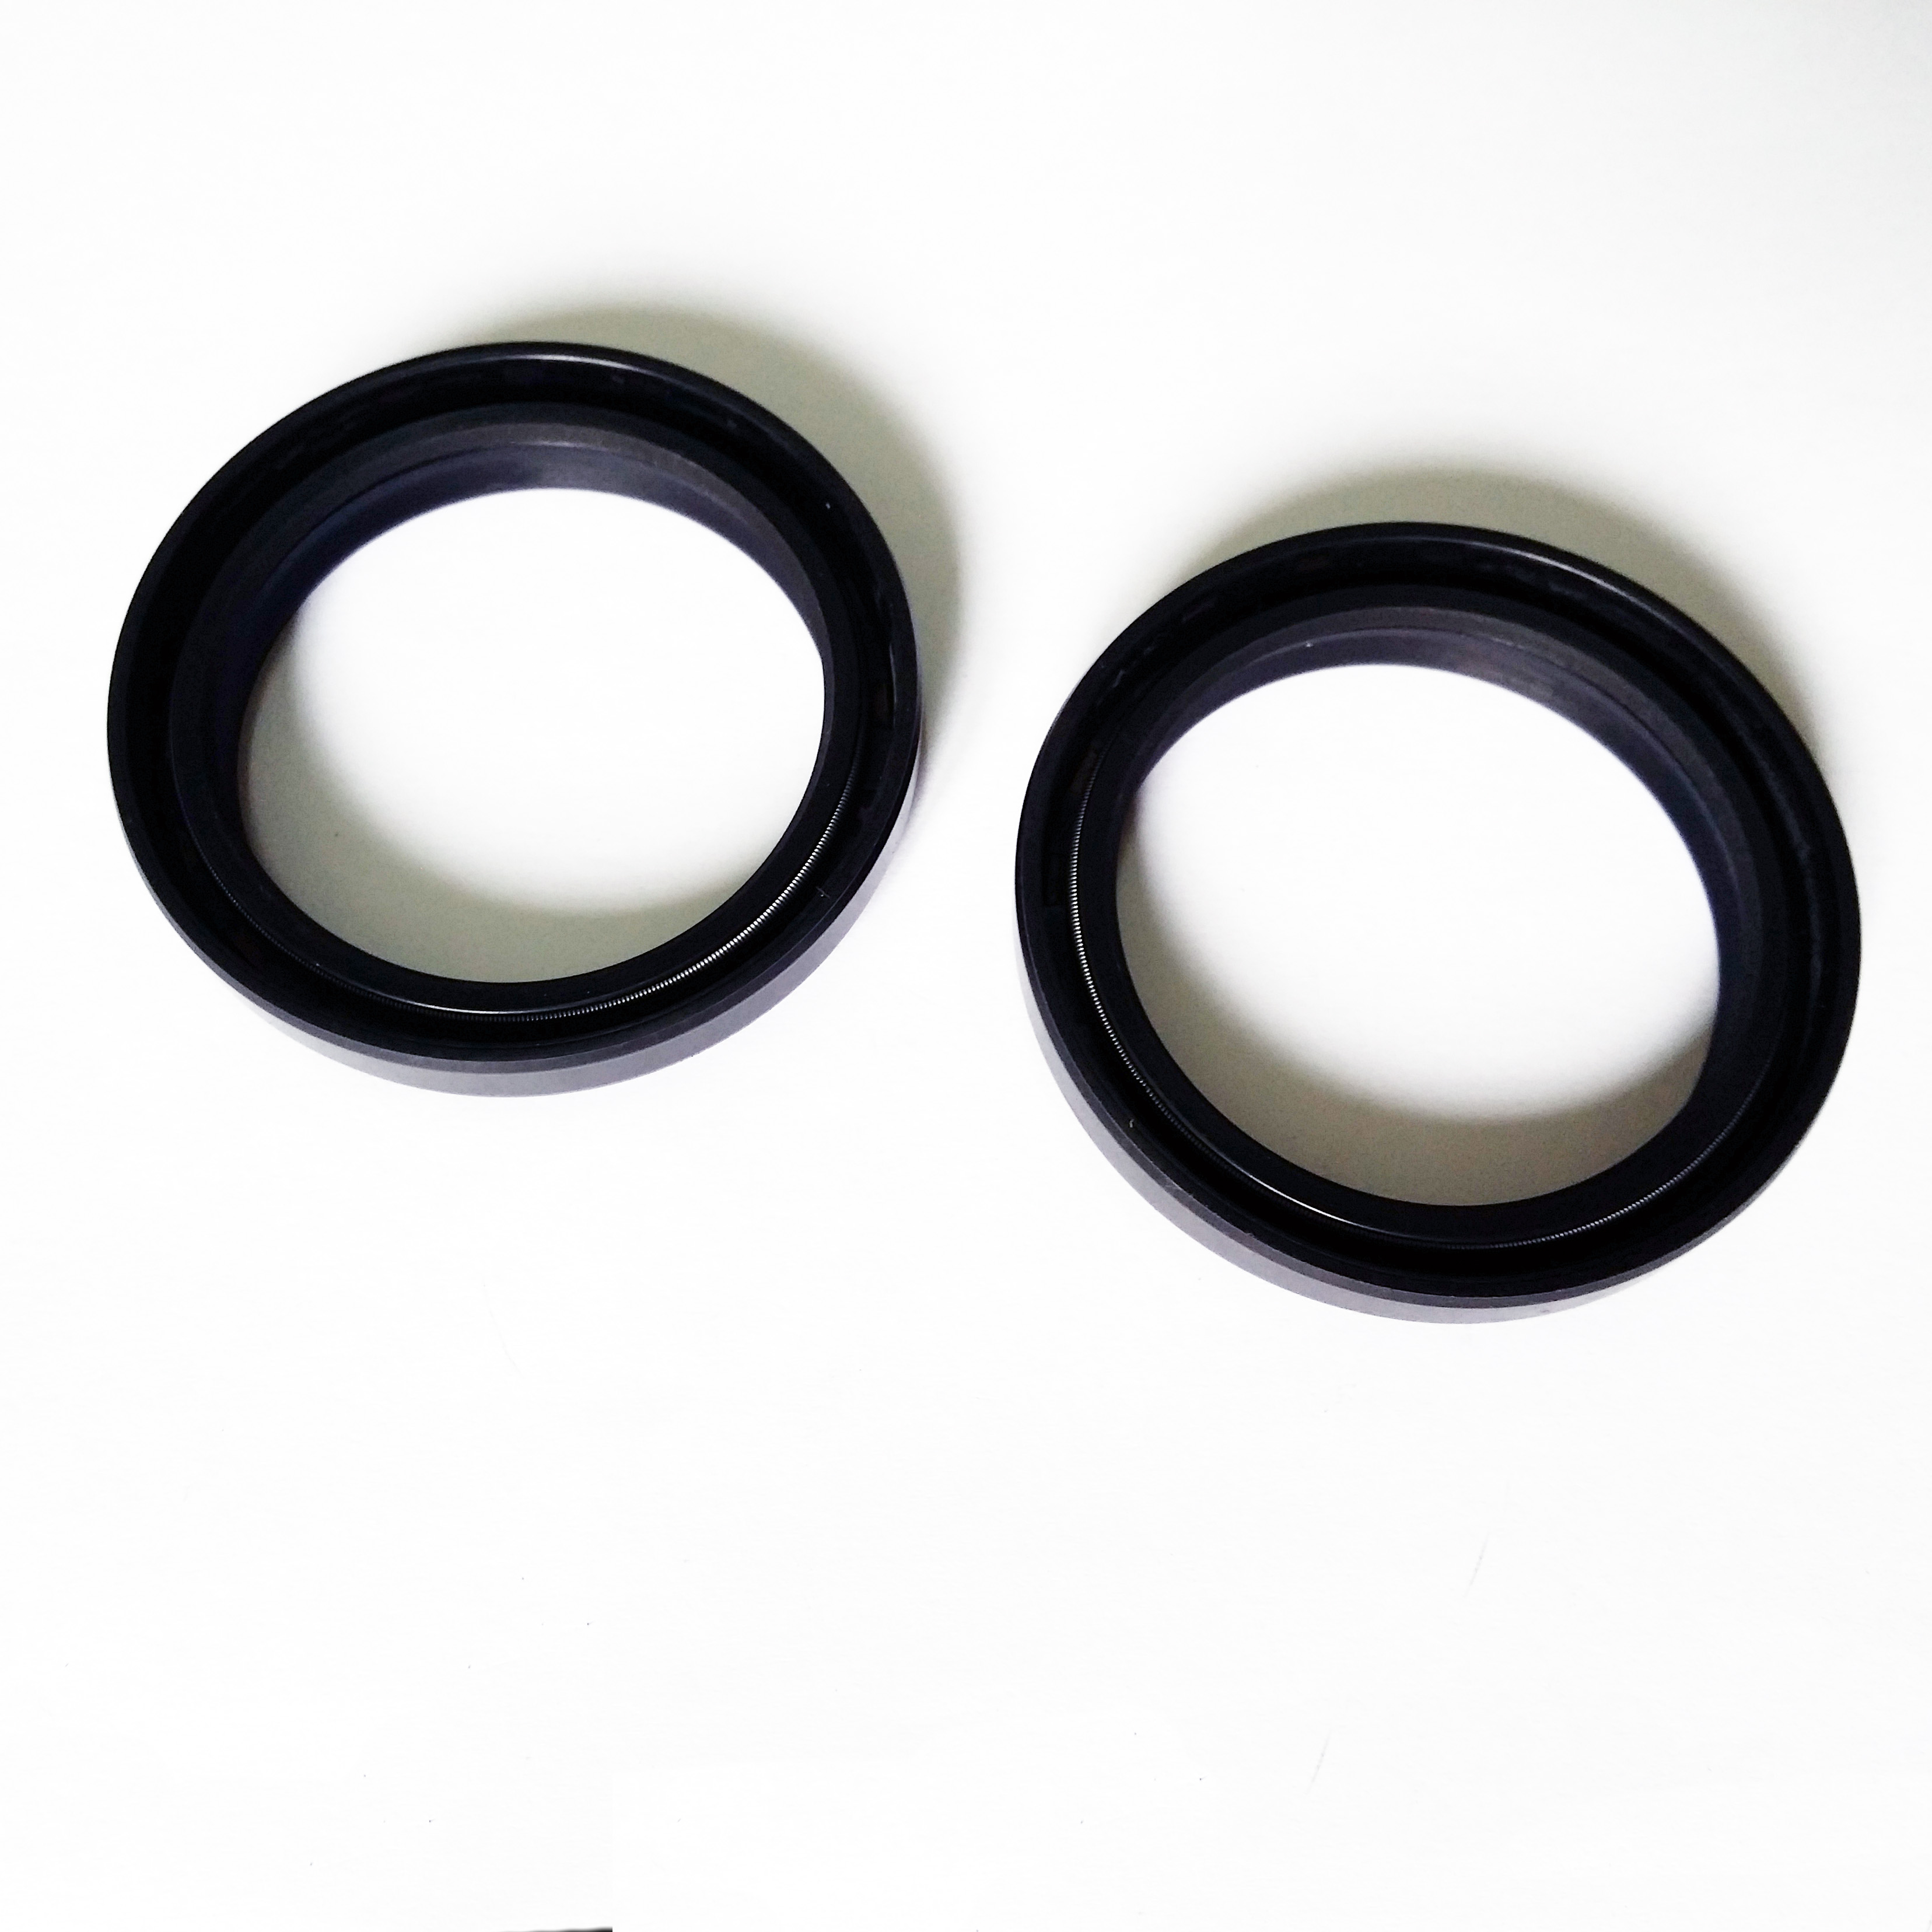 K-Tech KTM 450 EXC-F 2004-2016 NOK Front Fork Oil Seals